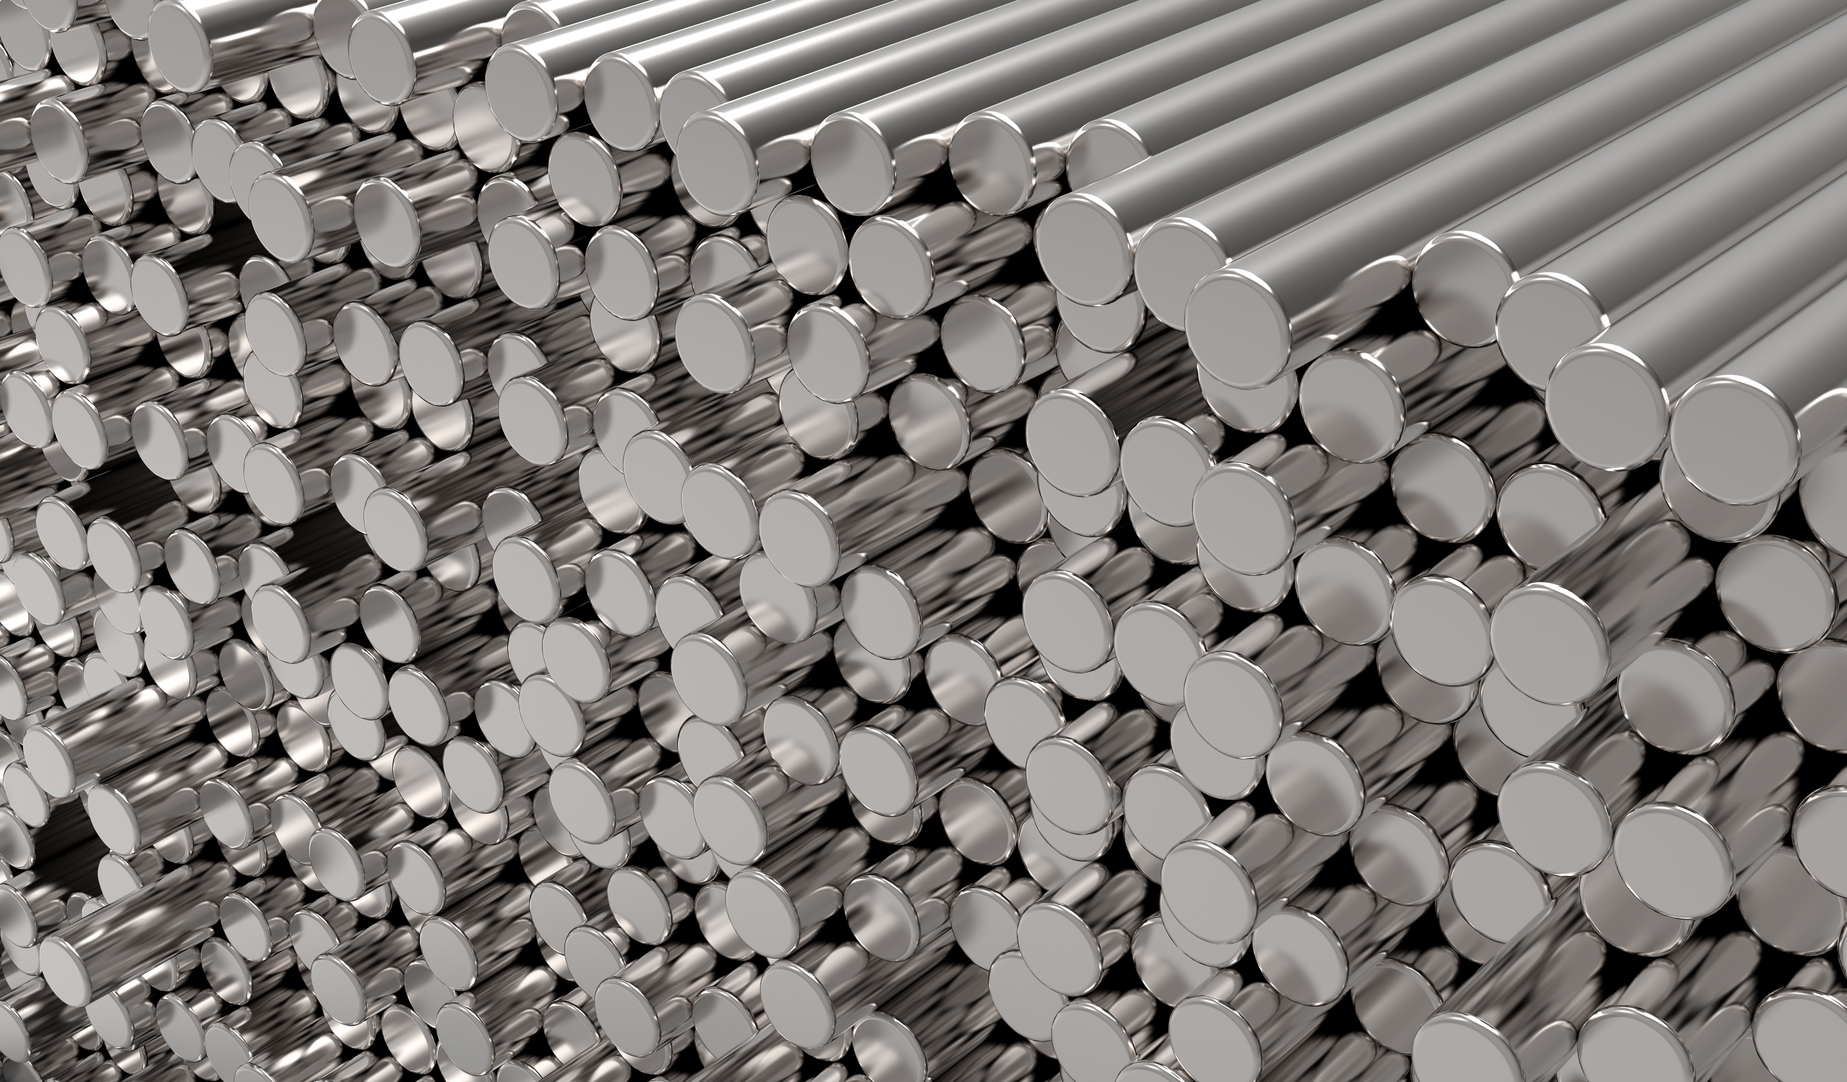 304 Stainless Steel Atlantic Stainless